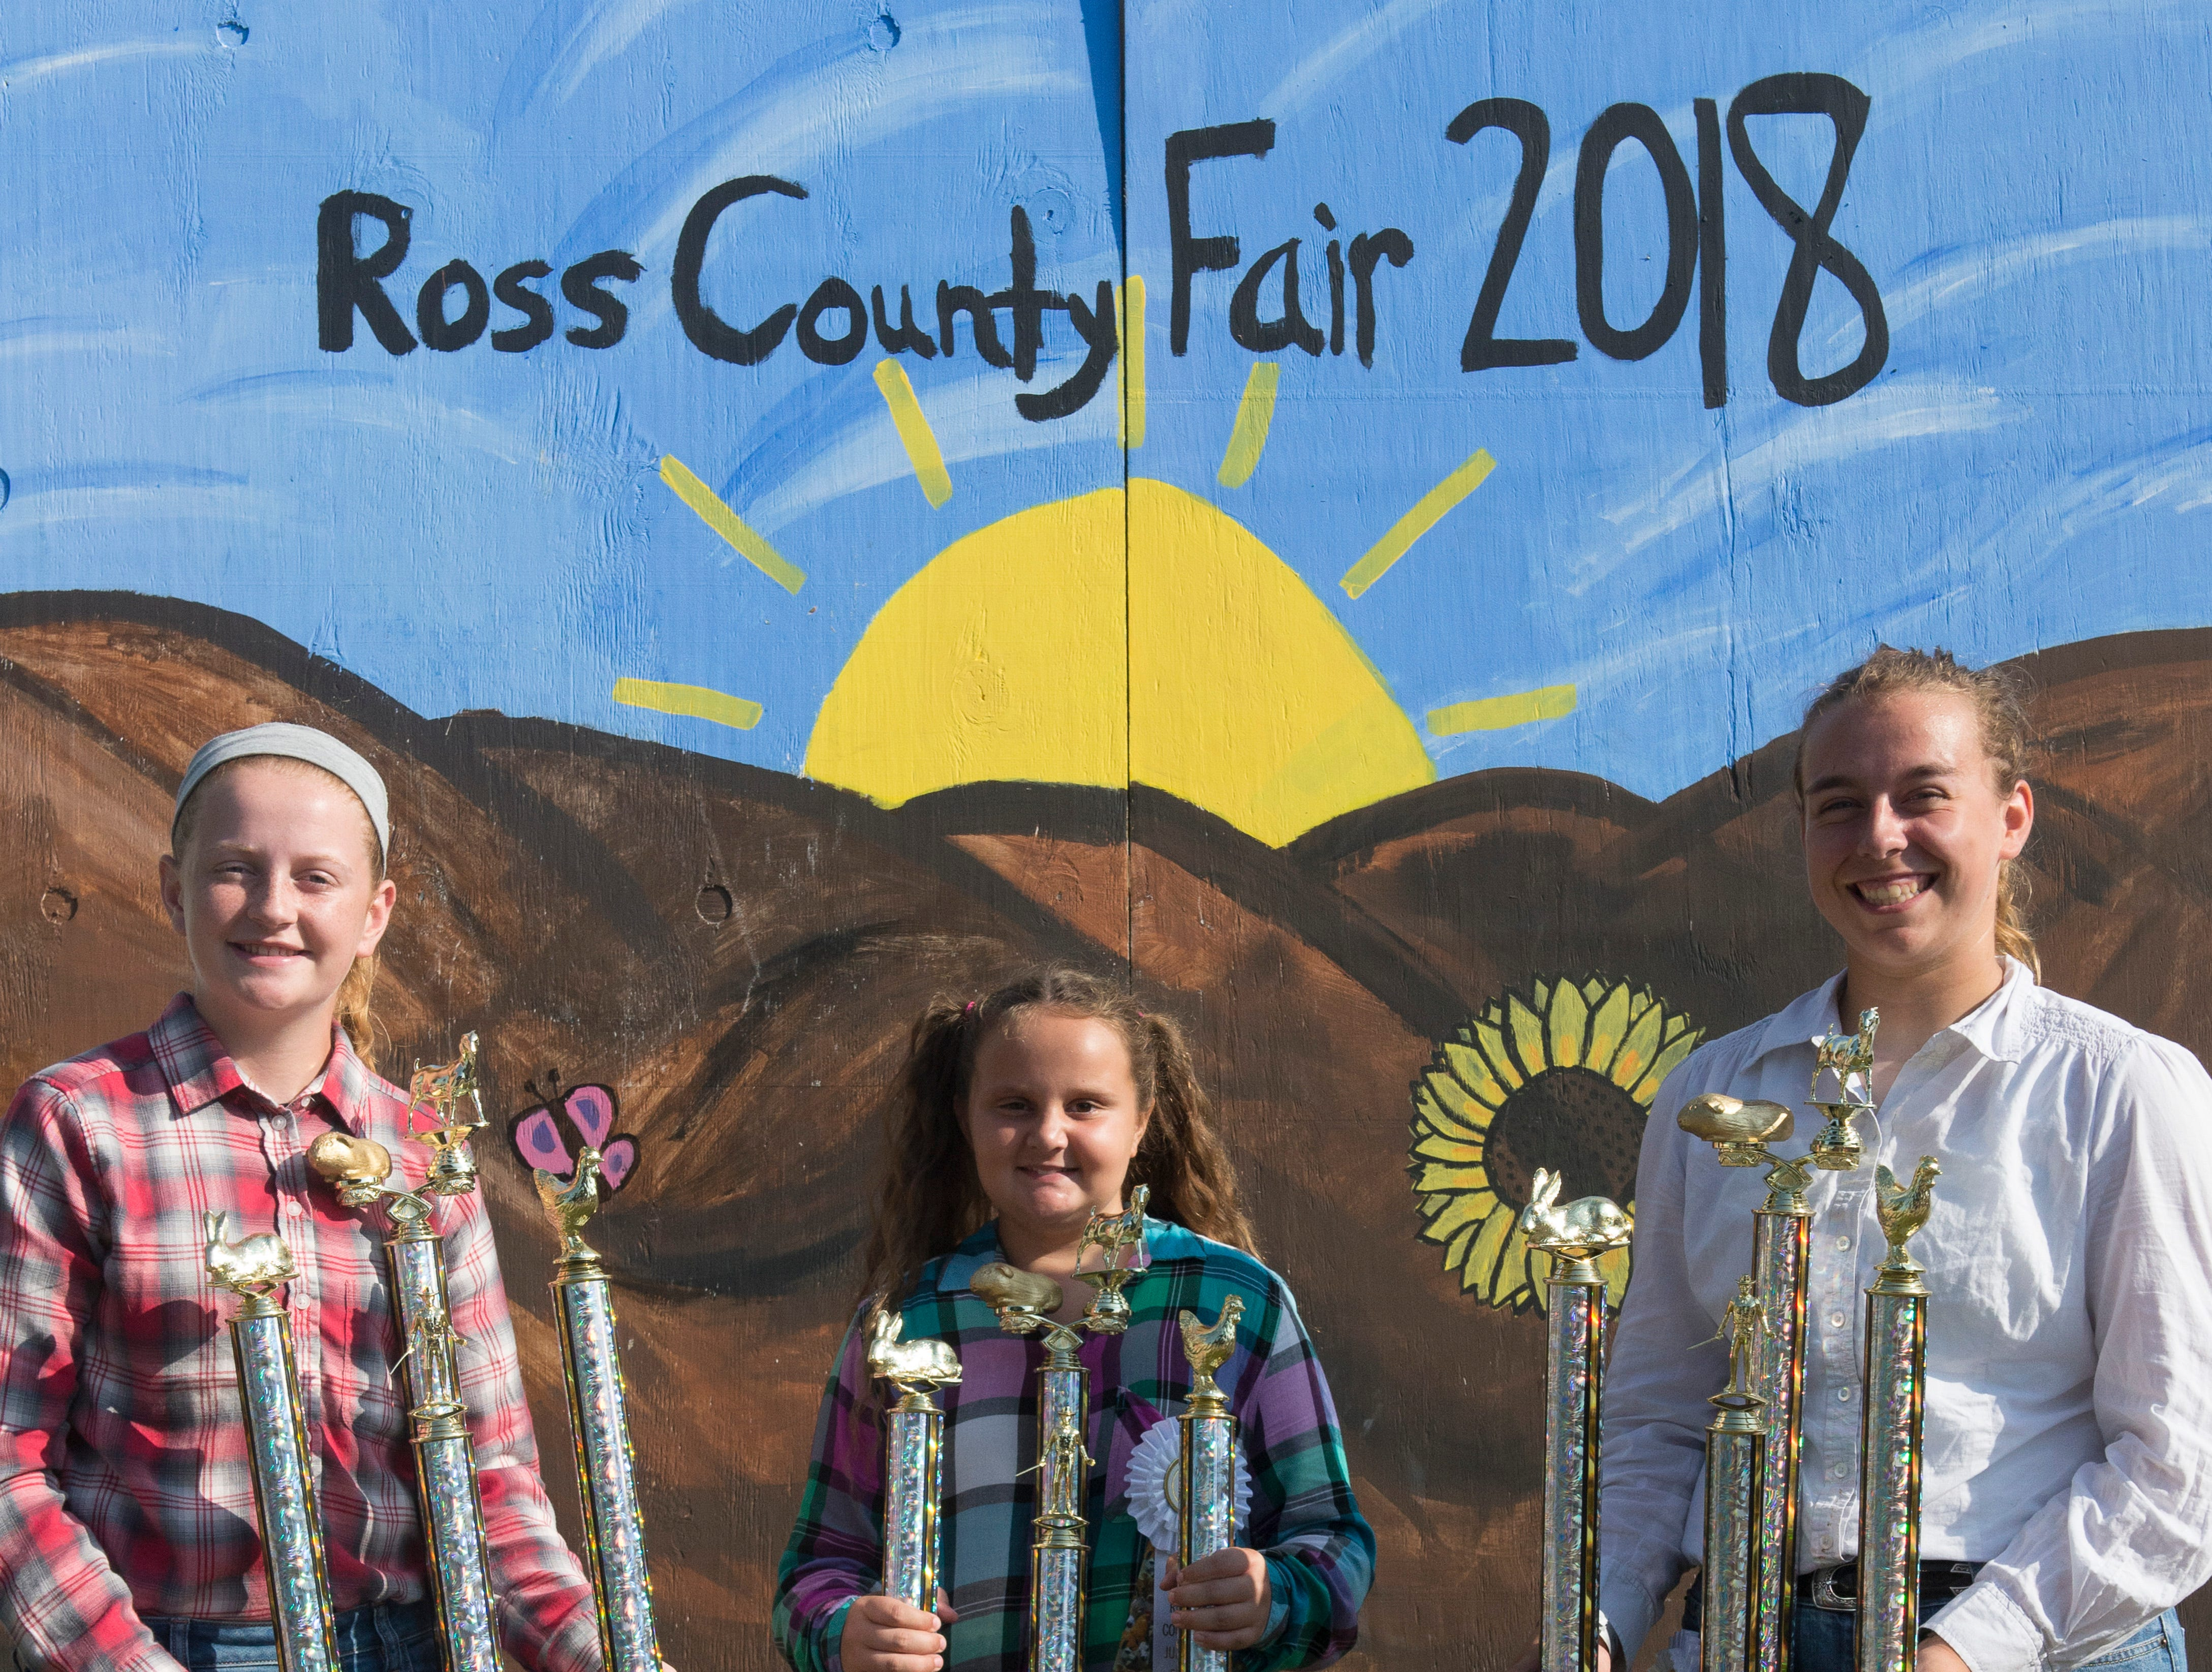 From left: first place winner of the intermediate class; Cambriana Rittinger, 9, first place winner of the junior class; and Ruth Beery, first place winner of the senior class, pose after the conclusion of the Small Animal Showman of Showmen Contestat the Ross County Fair on August 9, 2018 in Chillicothe, Ohio.